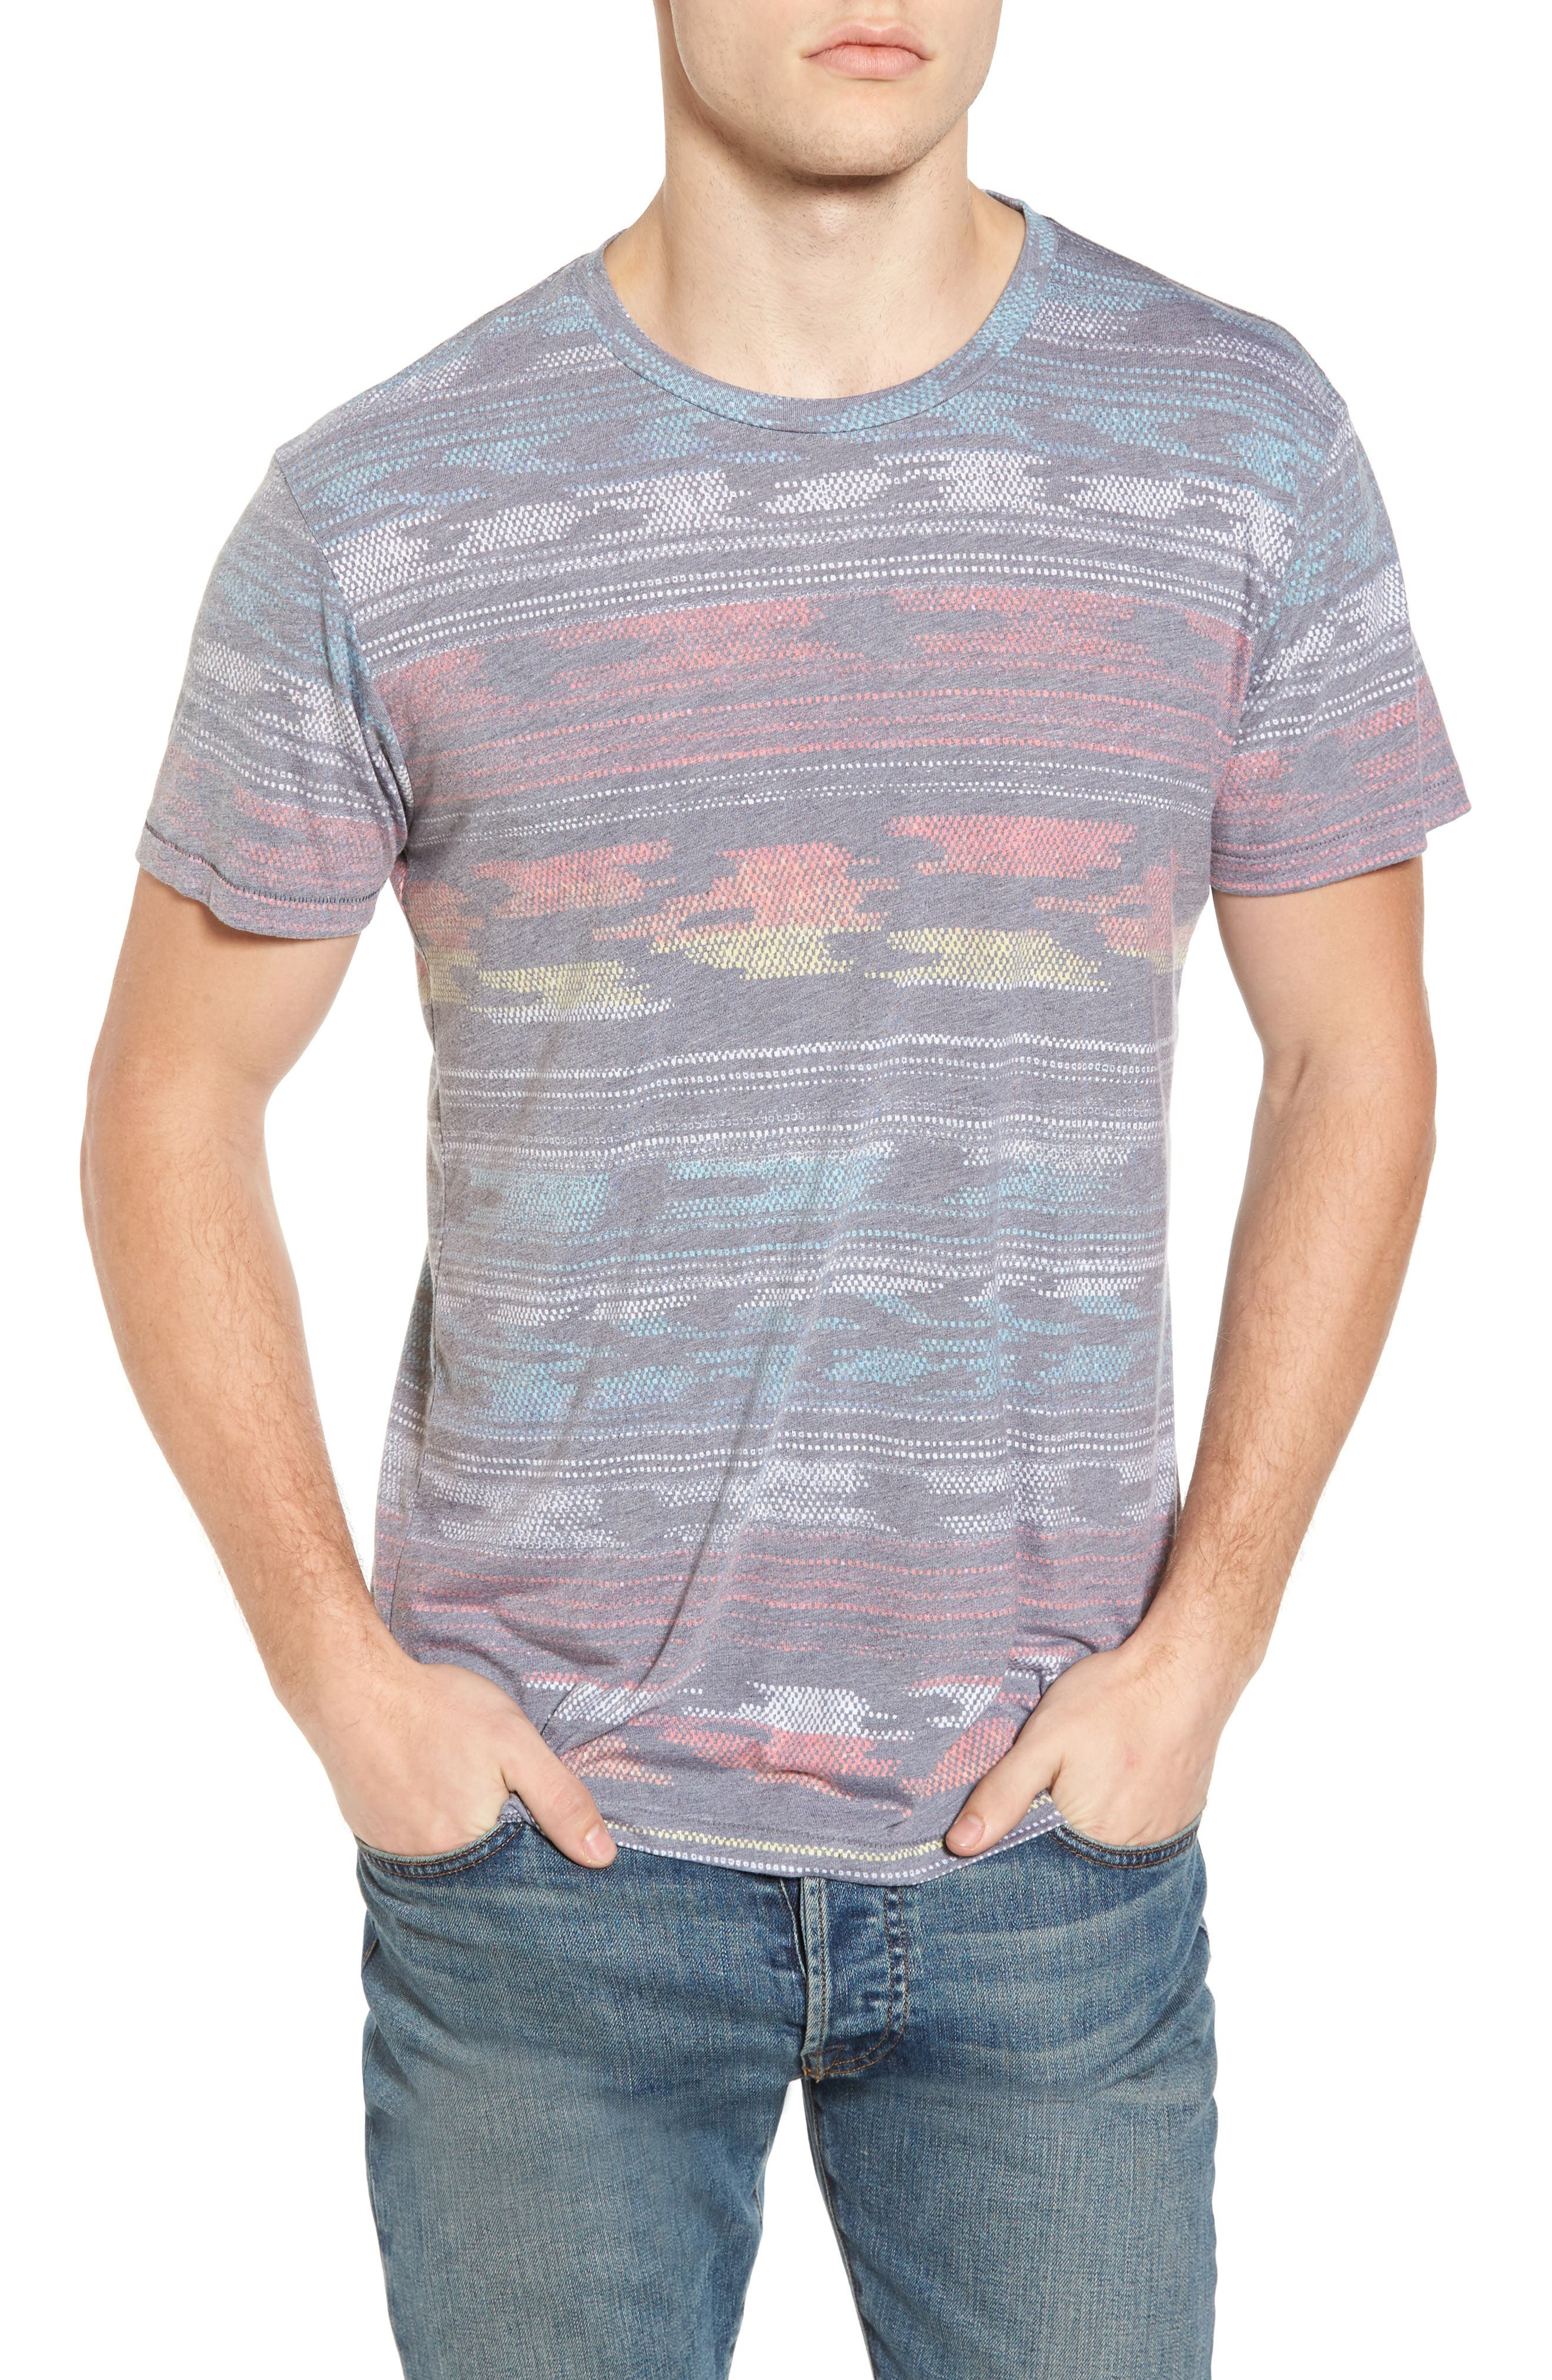 Madrugada T-Shirt,                         Main,                         color, Madrugada